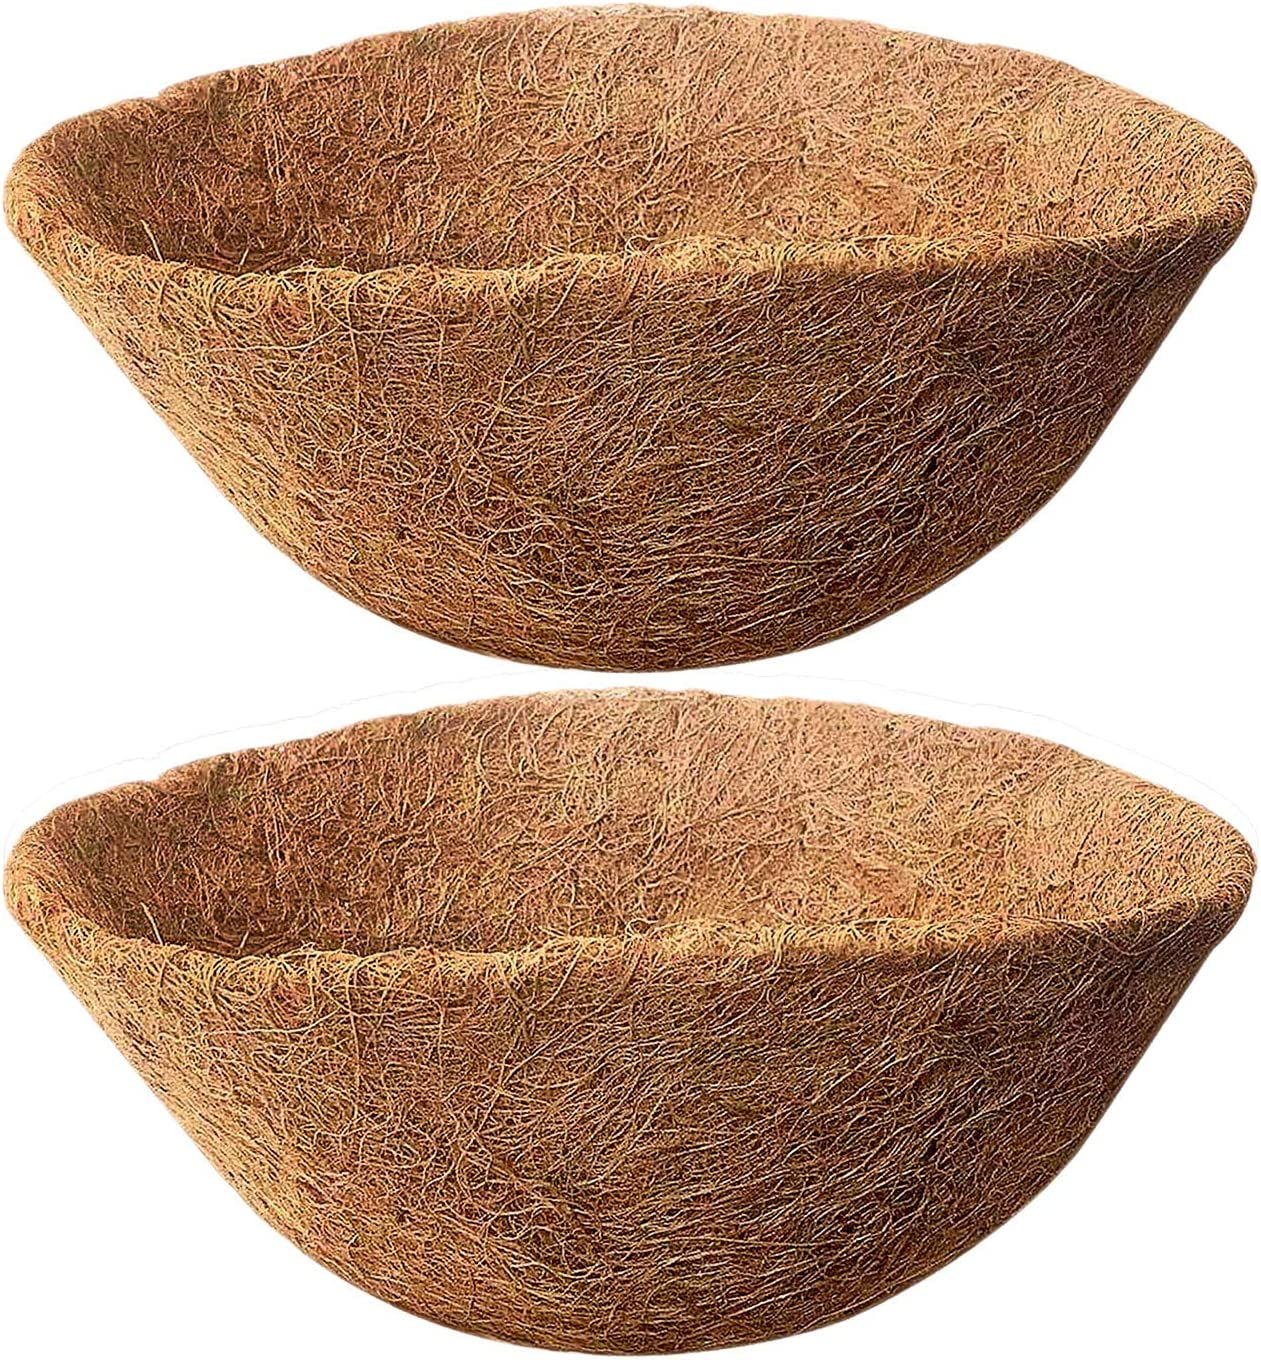 HIMETSUYA 2PCS Round Coco Liners for Hanging Basket, 14 inch Coconut Fiber Planter Liners Coconut Fiber Liners for Wall Hanging Baskets, Garden Planter Flower Pot (14 in)